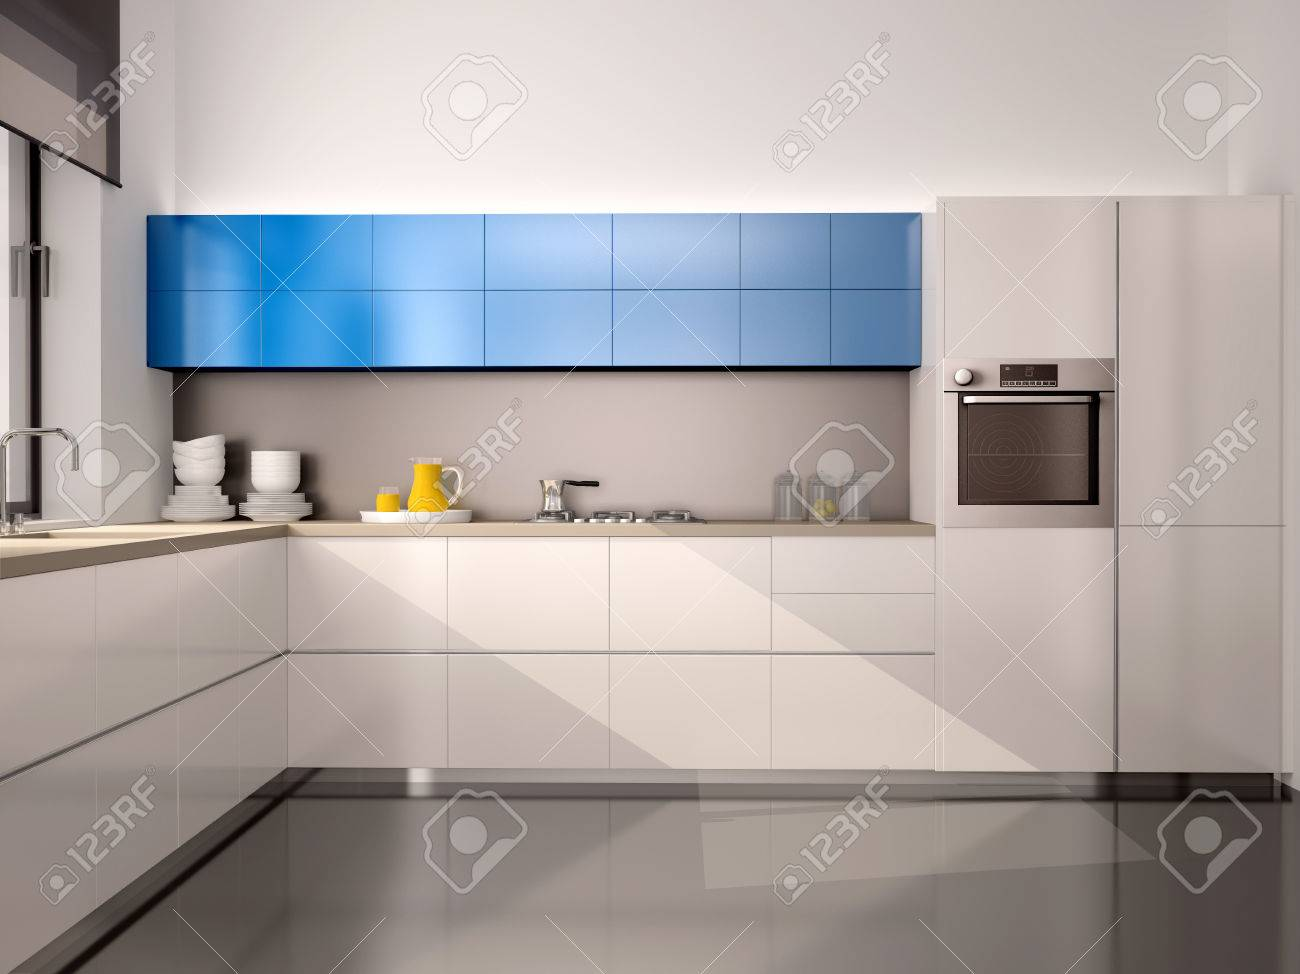 Küche Weiß Blau Stock Photo